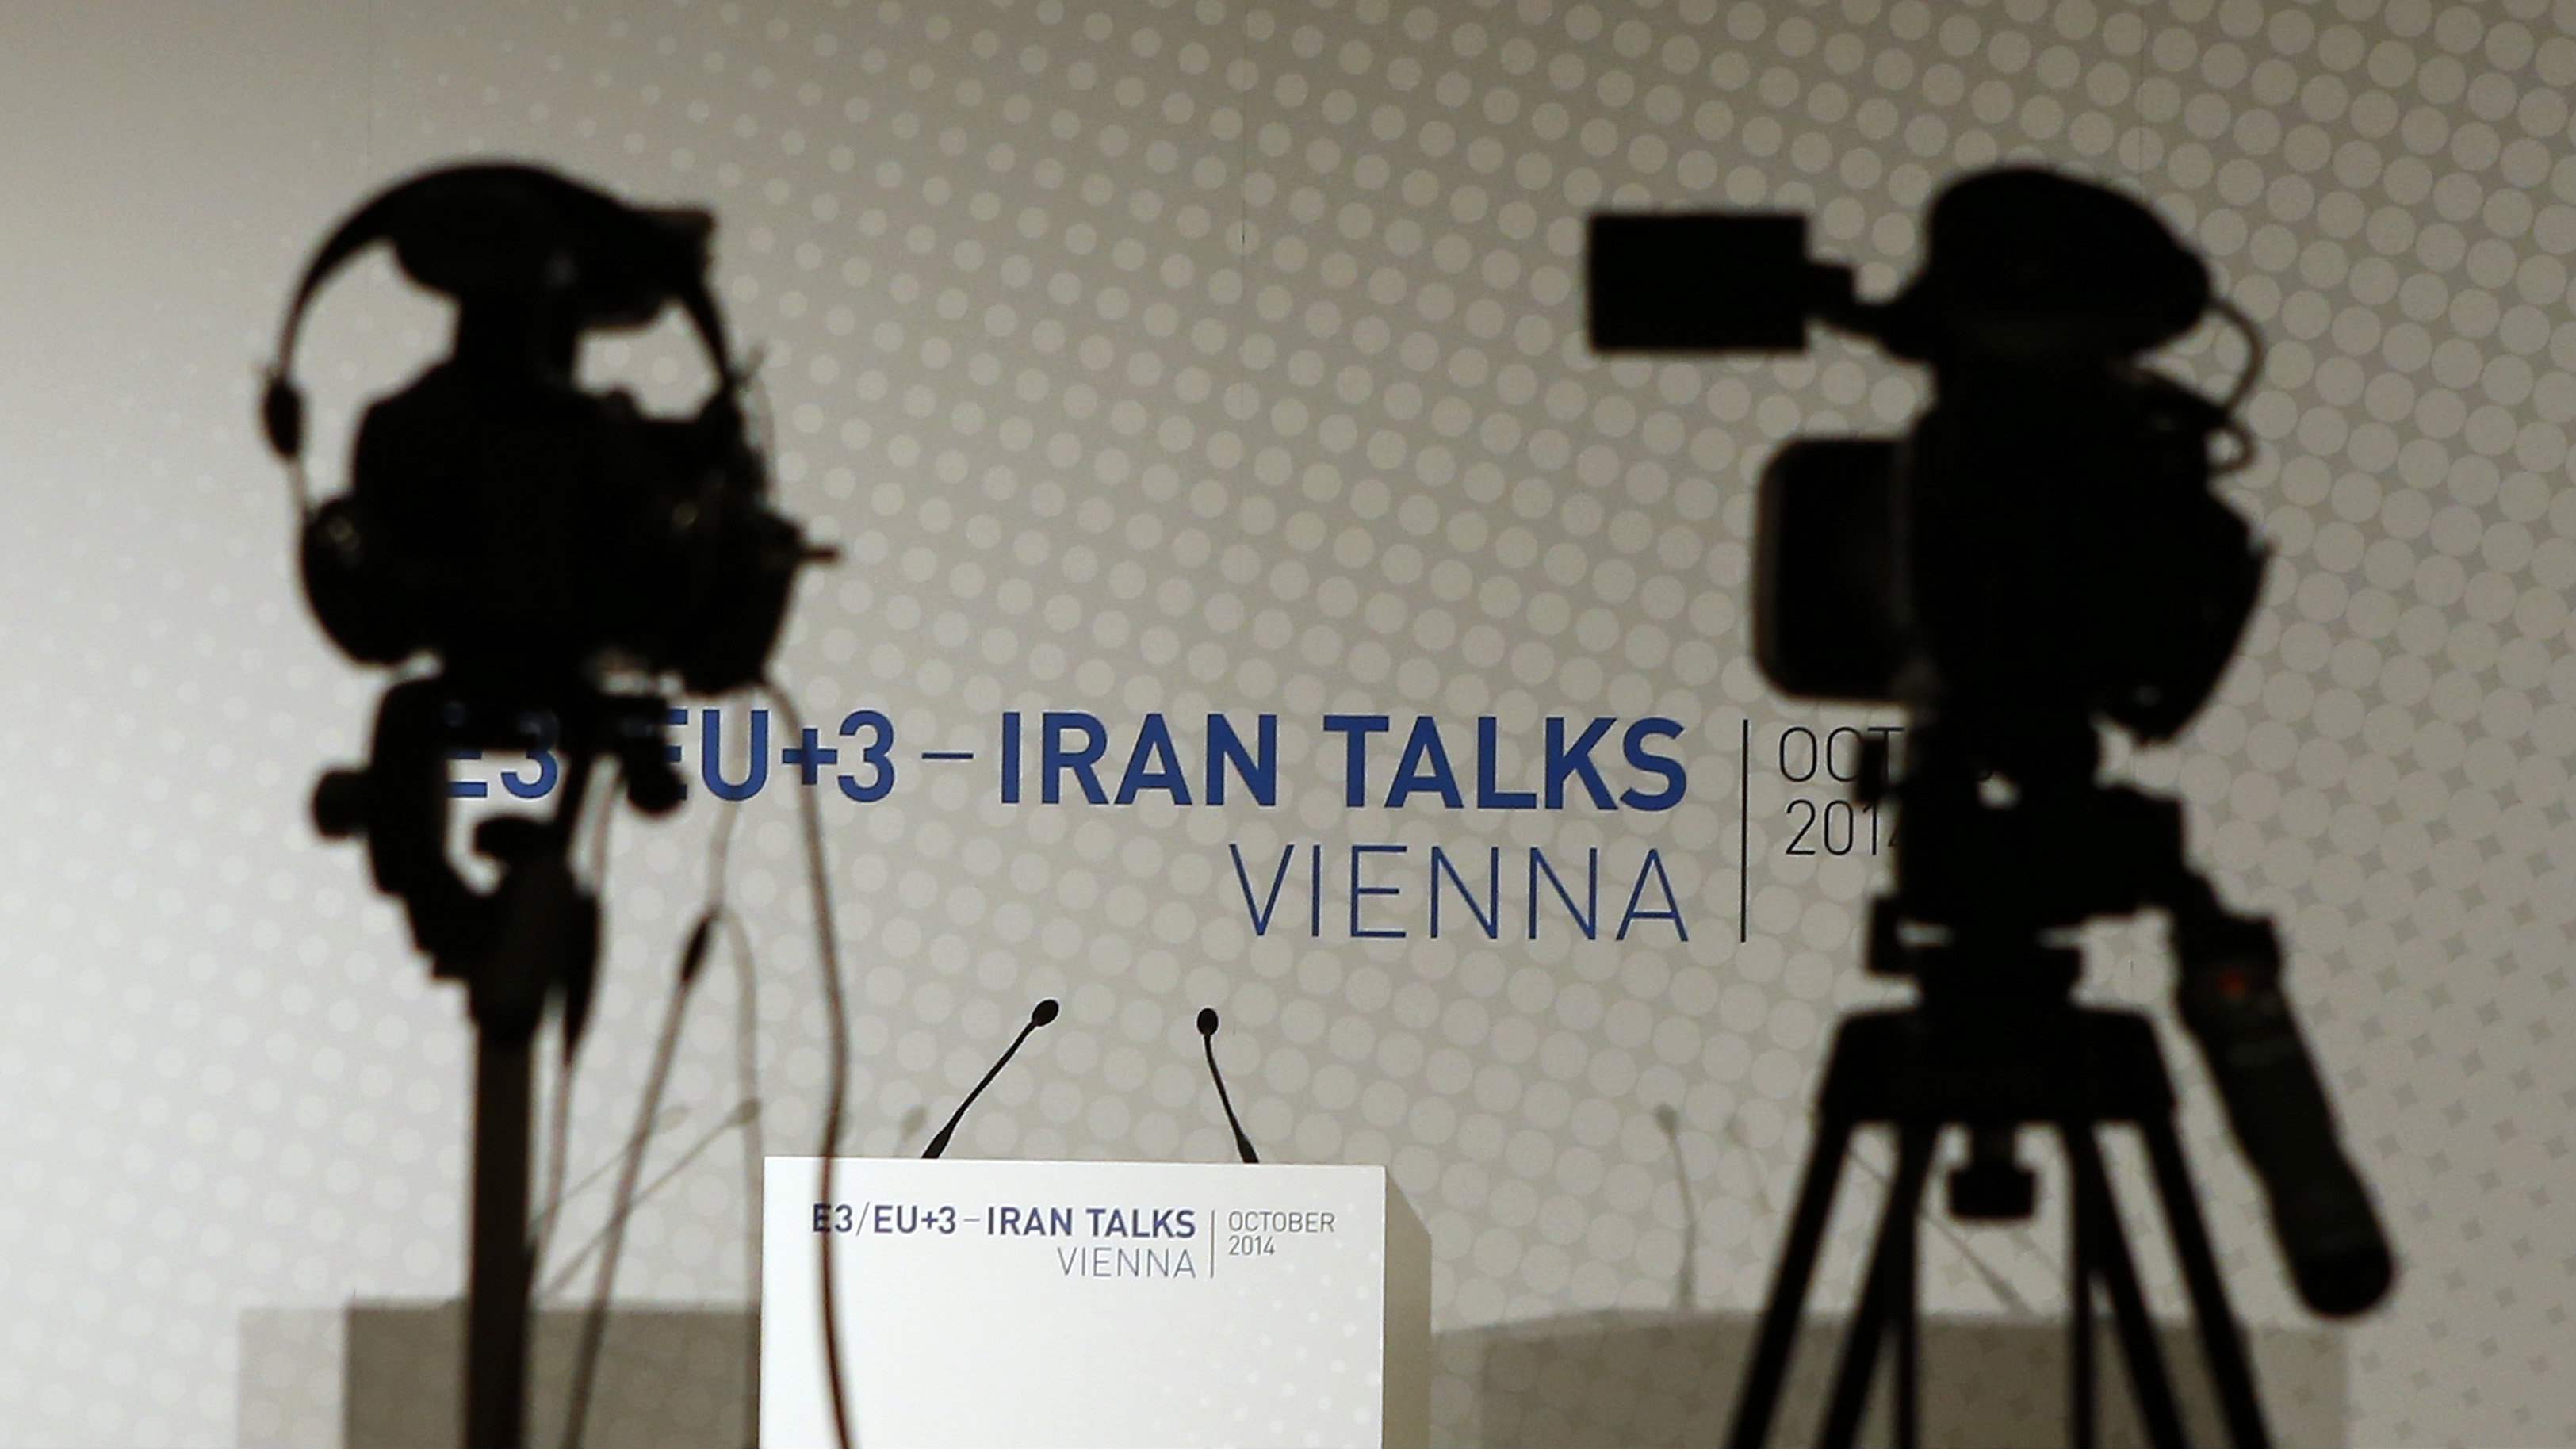 Video cameras are set up for a news conference prior to a meeting between EU foreign policy chief Catherine Ashton and Iranian Foreign Minister Mohammad Javad Zarif in Vienna October 14, 2014.